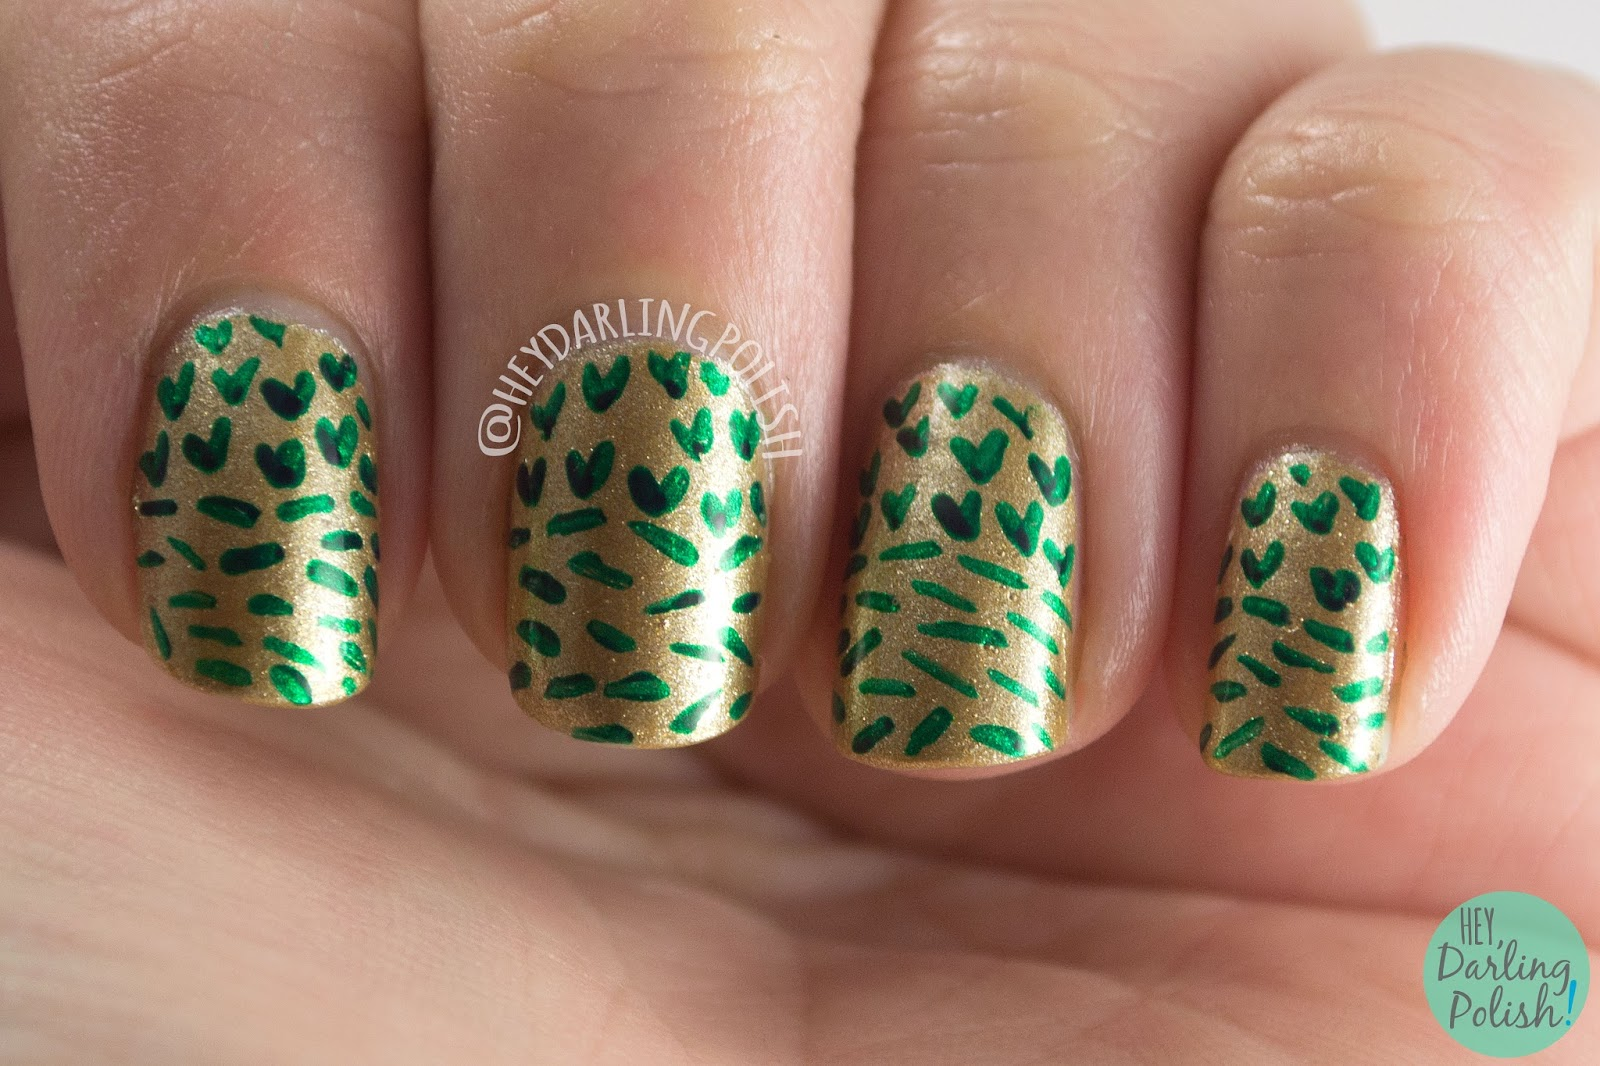 nails, nail art, nail polish, gold, green, pattern, hey darling polish, butter london, hobby polish bloggers,